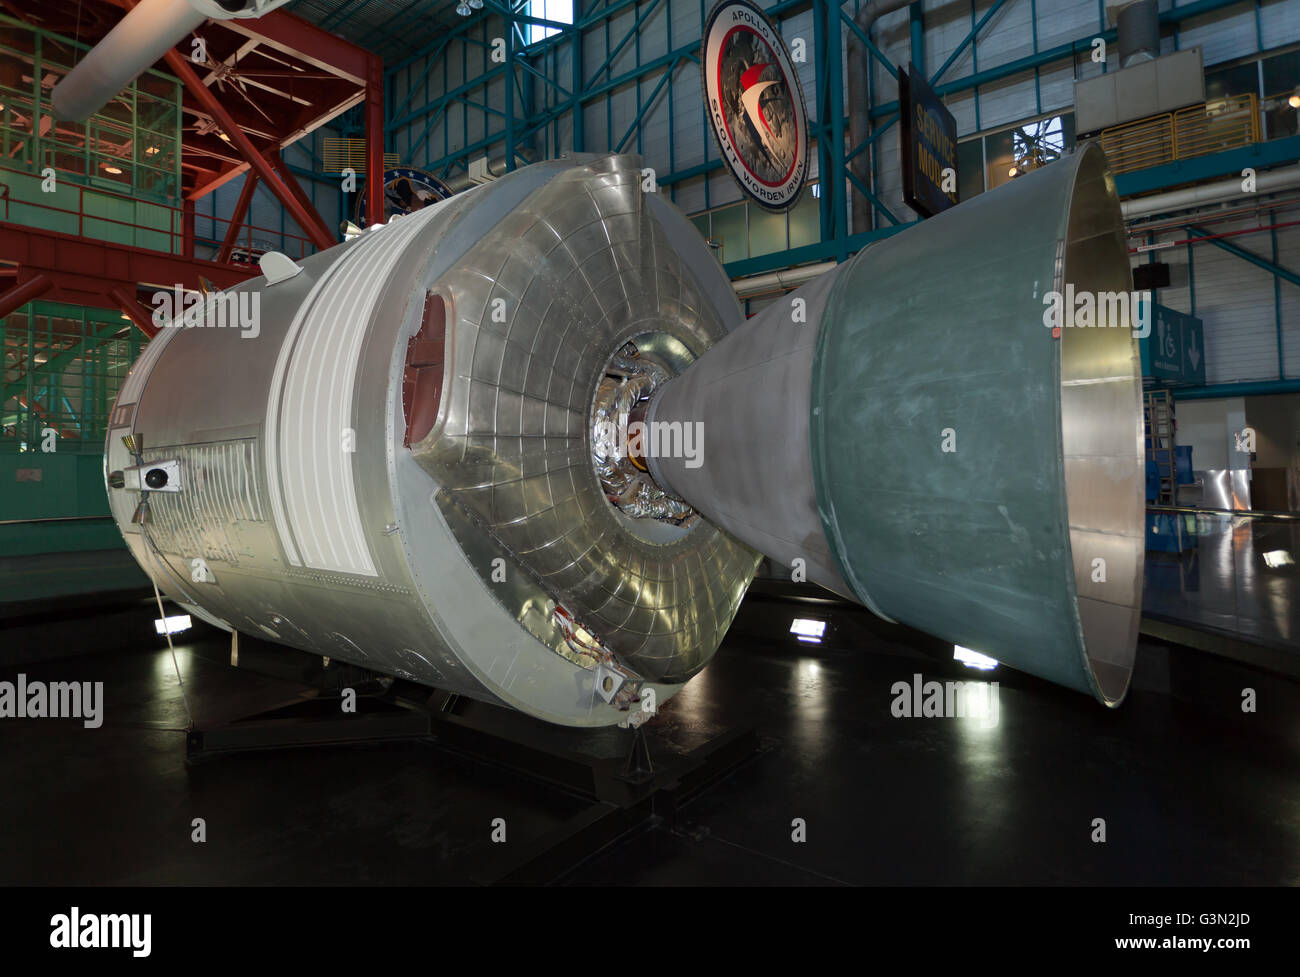 nasa apollo spacecraft command and service module news reference - photo #34